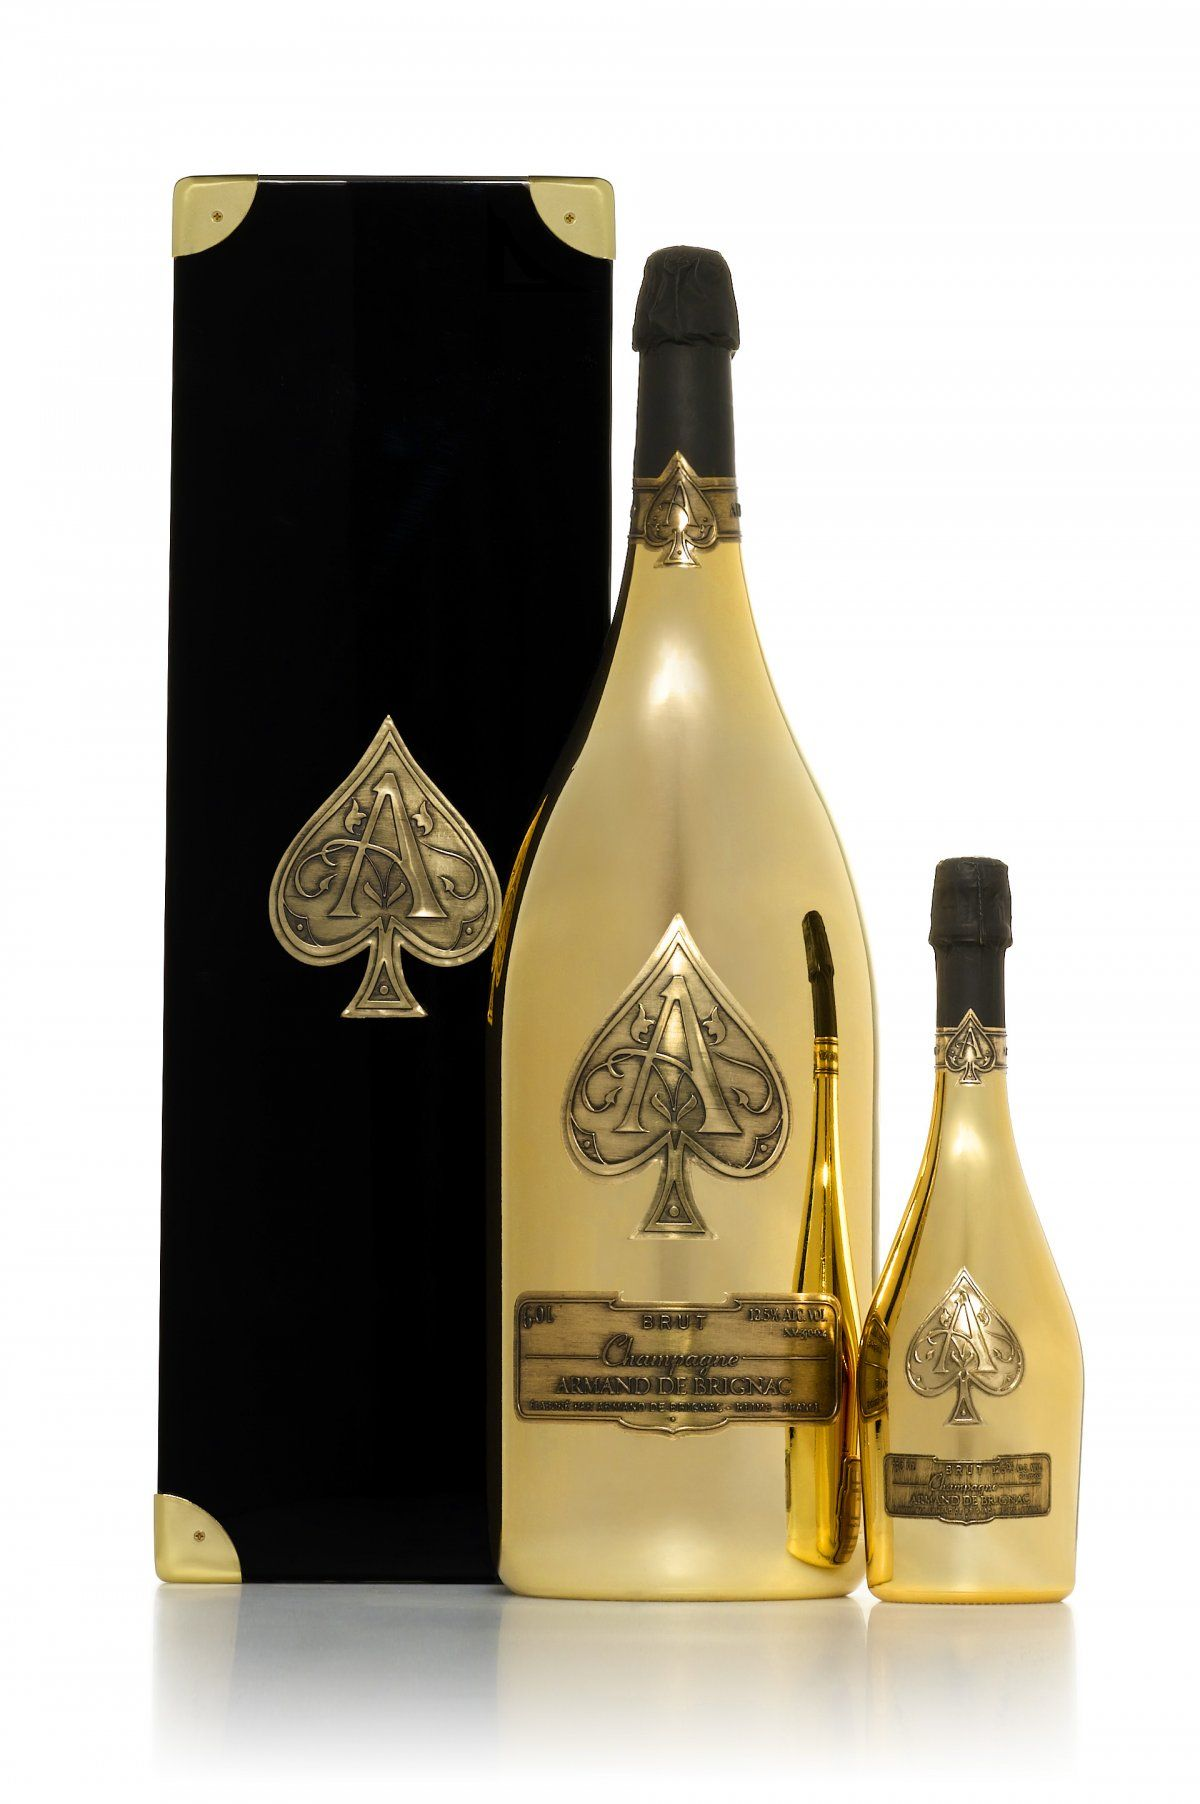 The 10 most expensive Champagne bottles on the planet